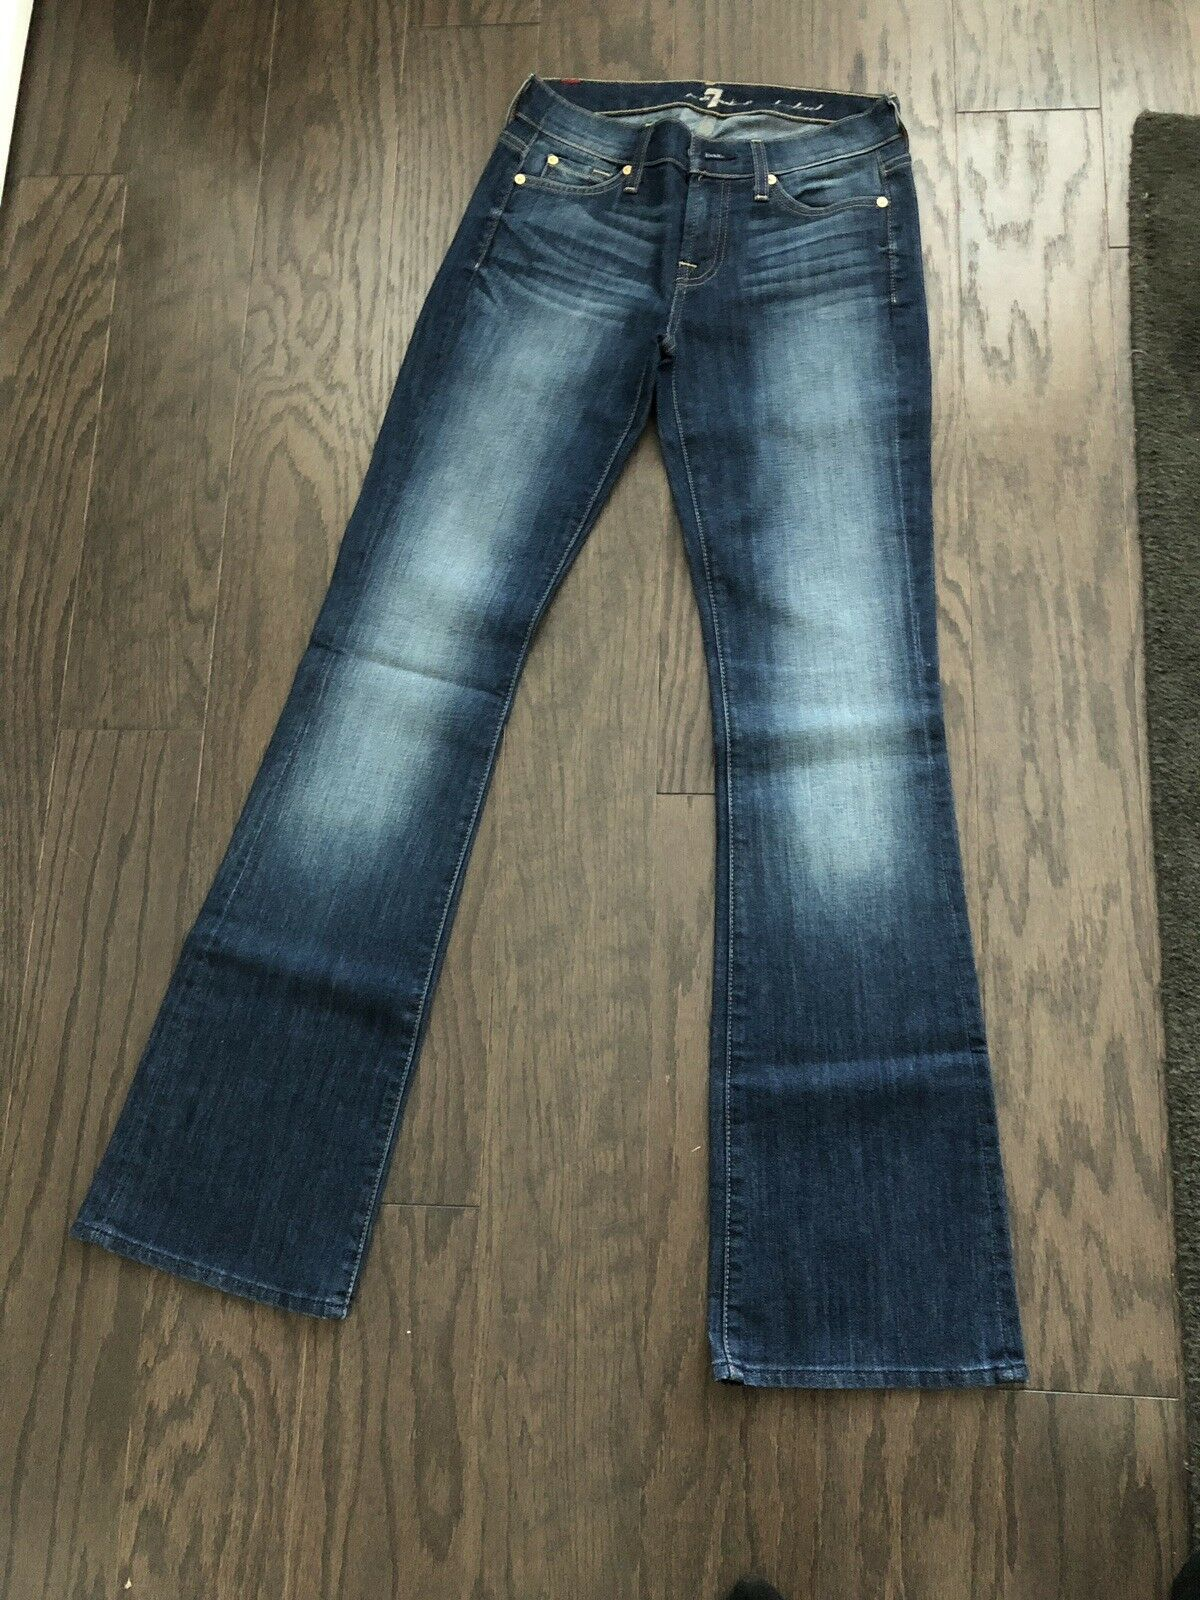 Womens Seven 7 For All Mankind Size 26 Boot Cut Jeans